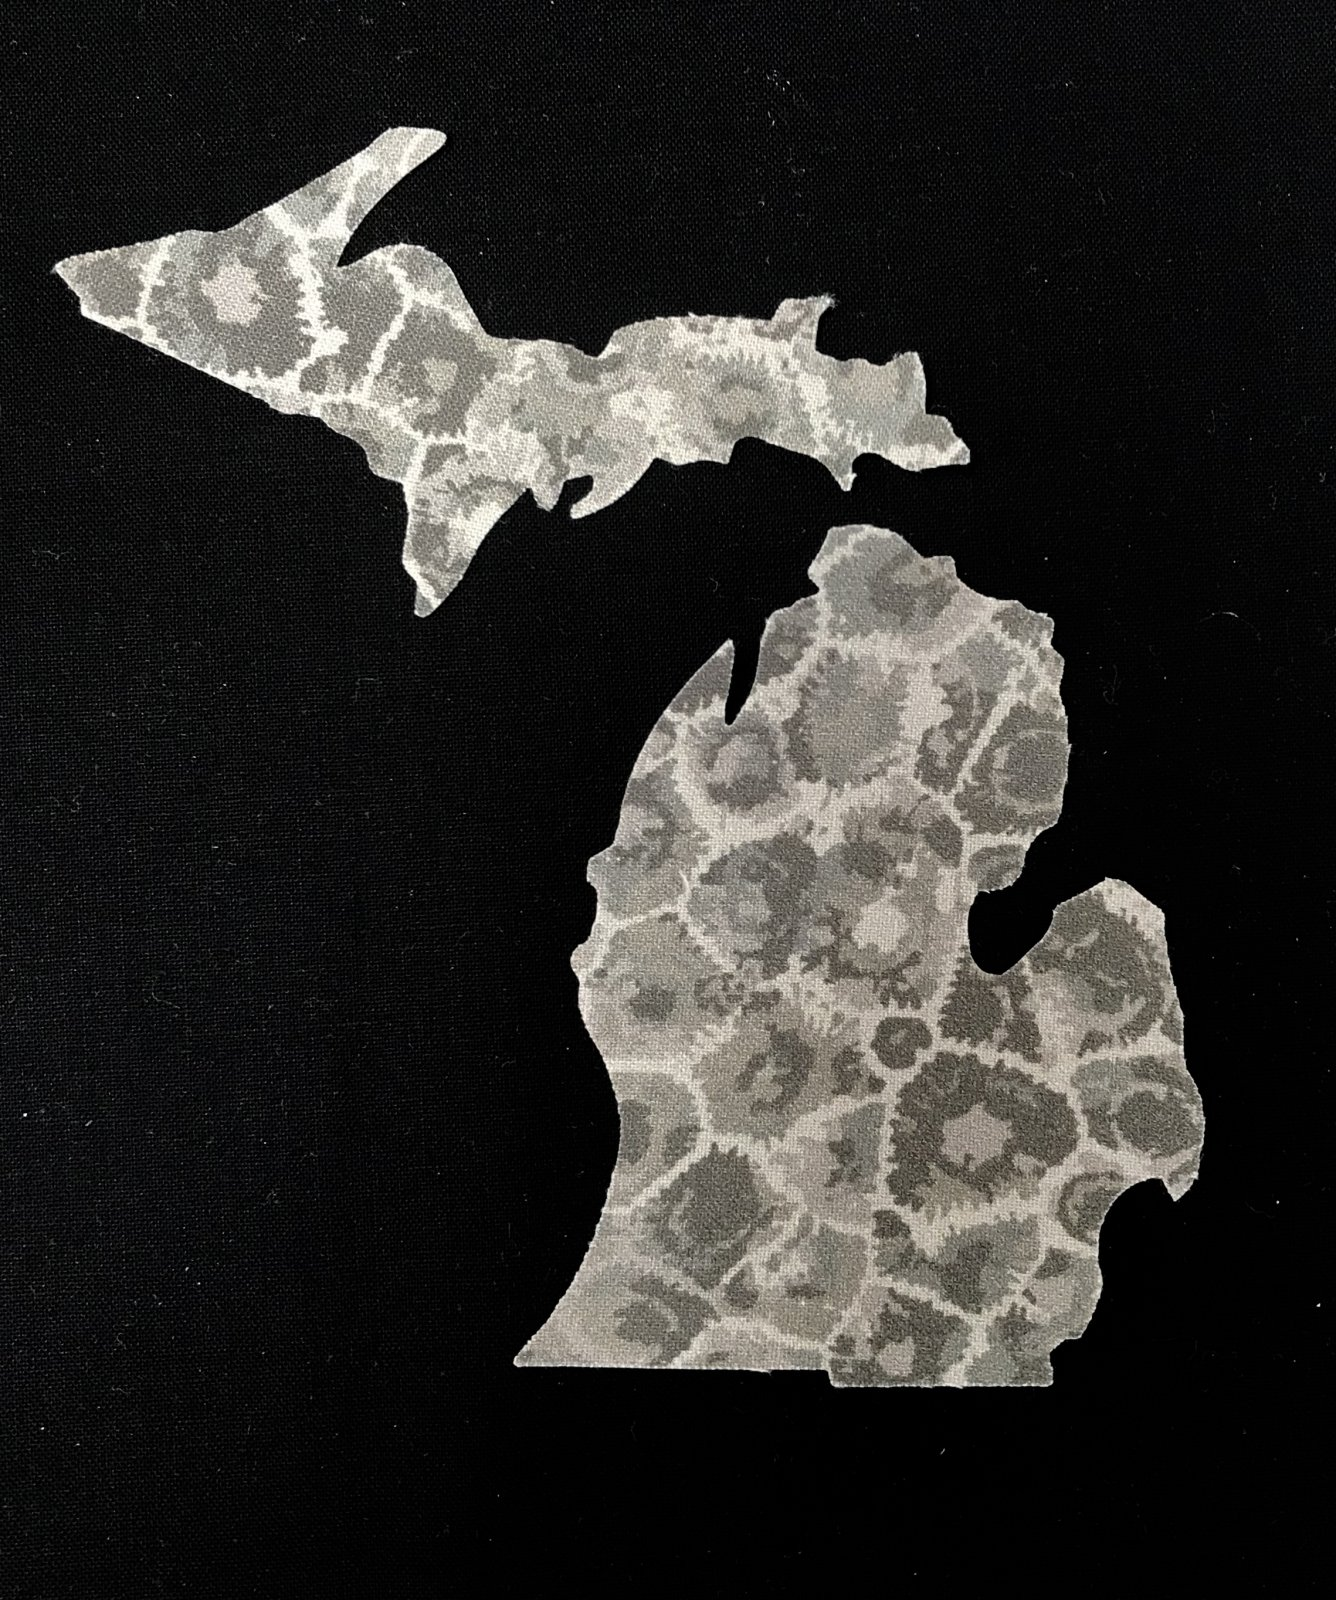 Petoskey Stone Fabric  - Small State of Michigan Cutout